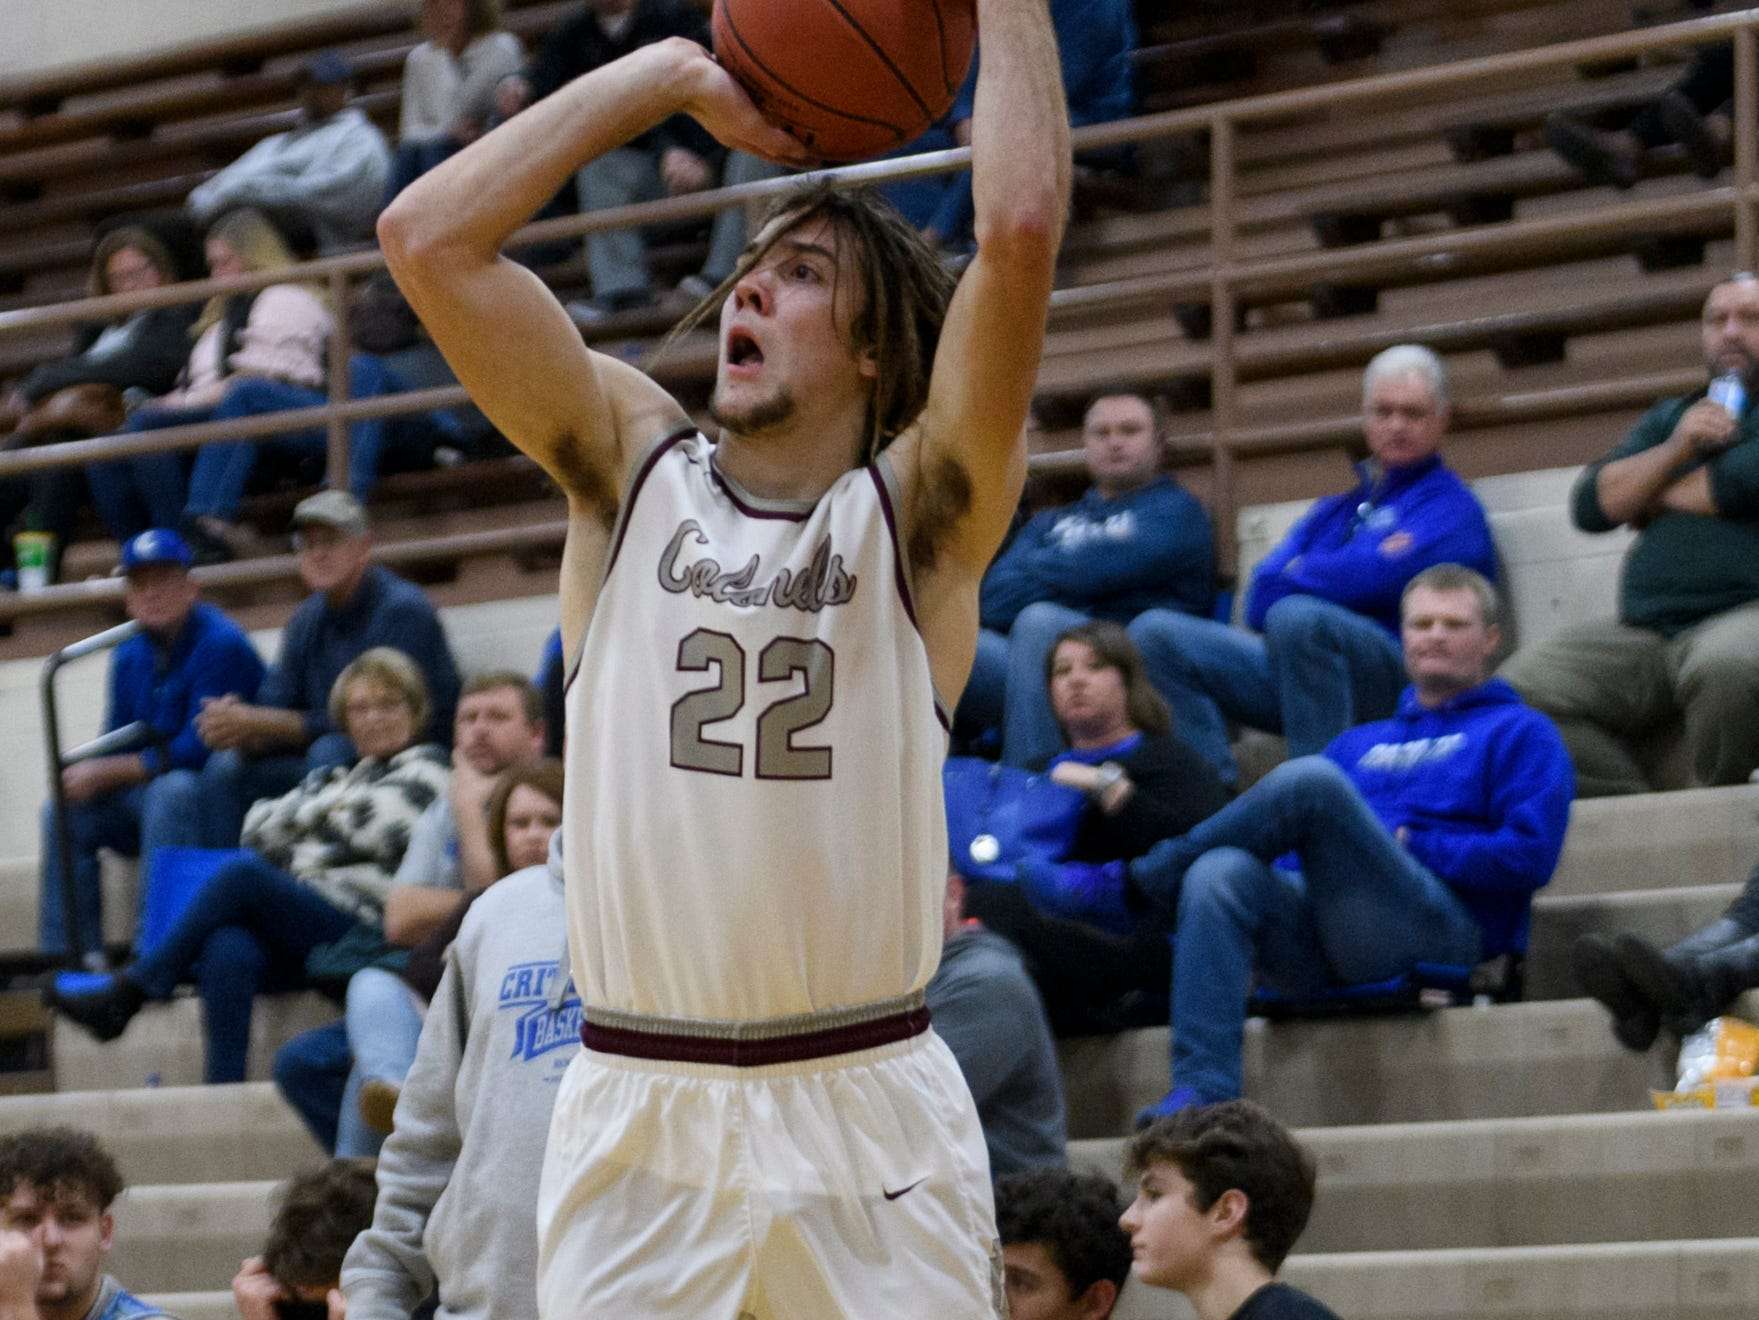 Henderson's Nick Cissell (22) makes a three-pointer during the first quarter against the Crittenden County Rockets at Henderson County High School in Henderson, Ky., Tuesday, Dec. 18, 2018. The Colonels defeated the Rockets 88-52.